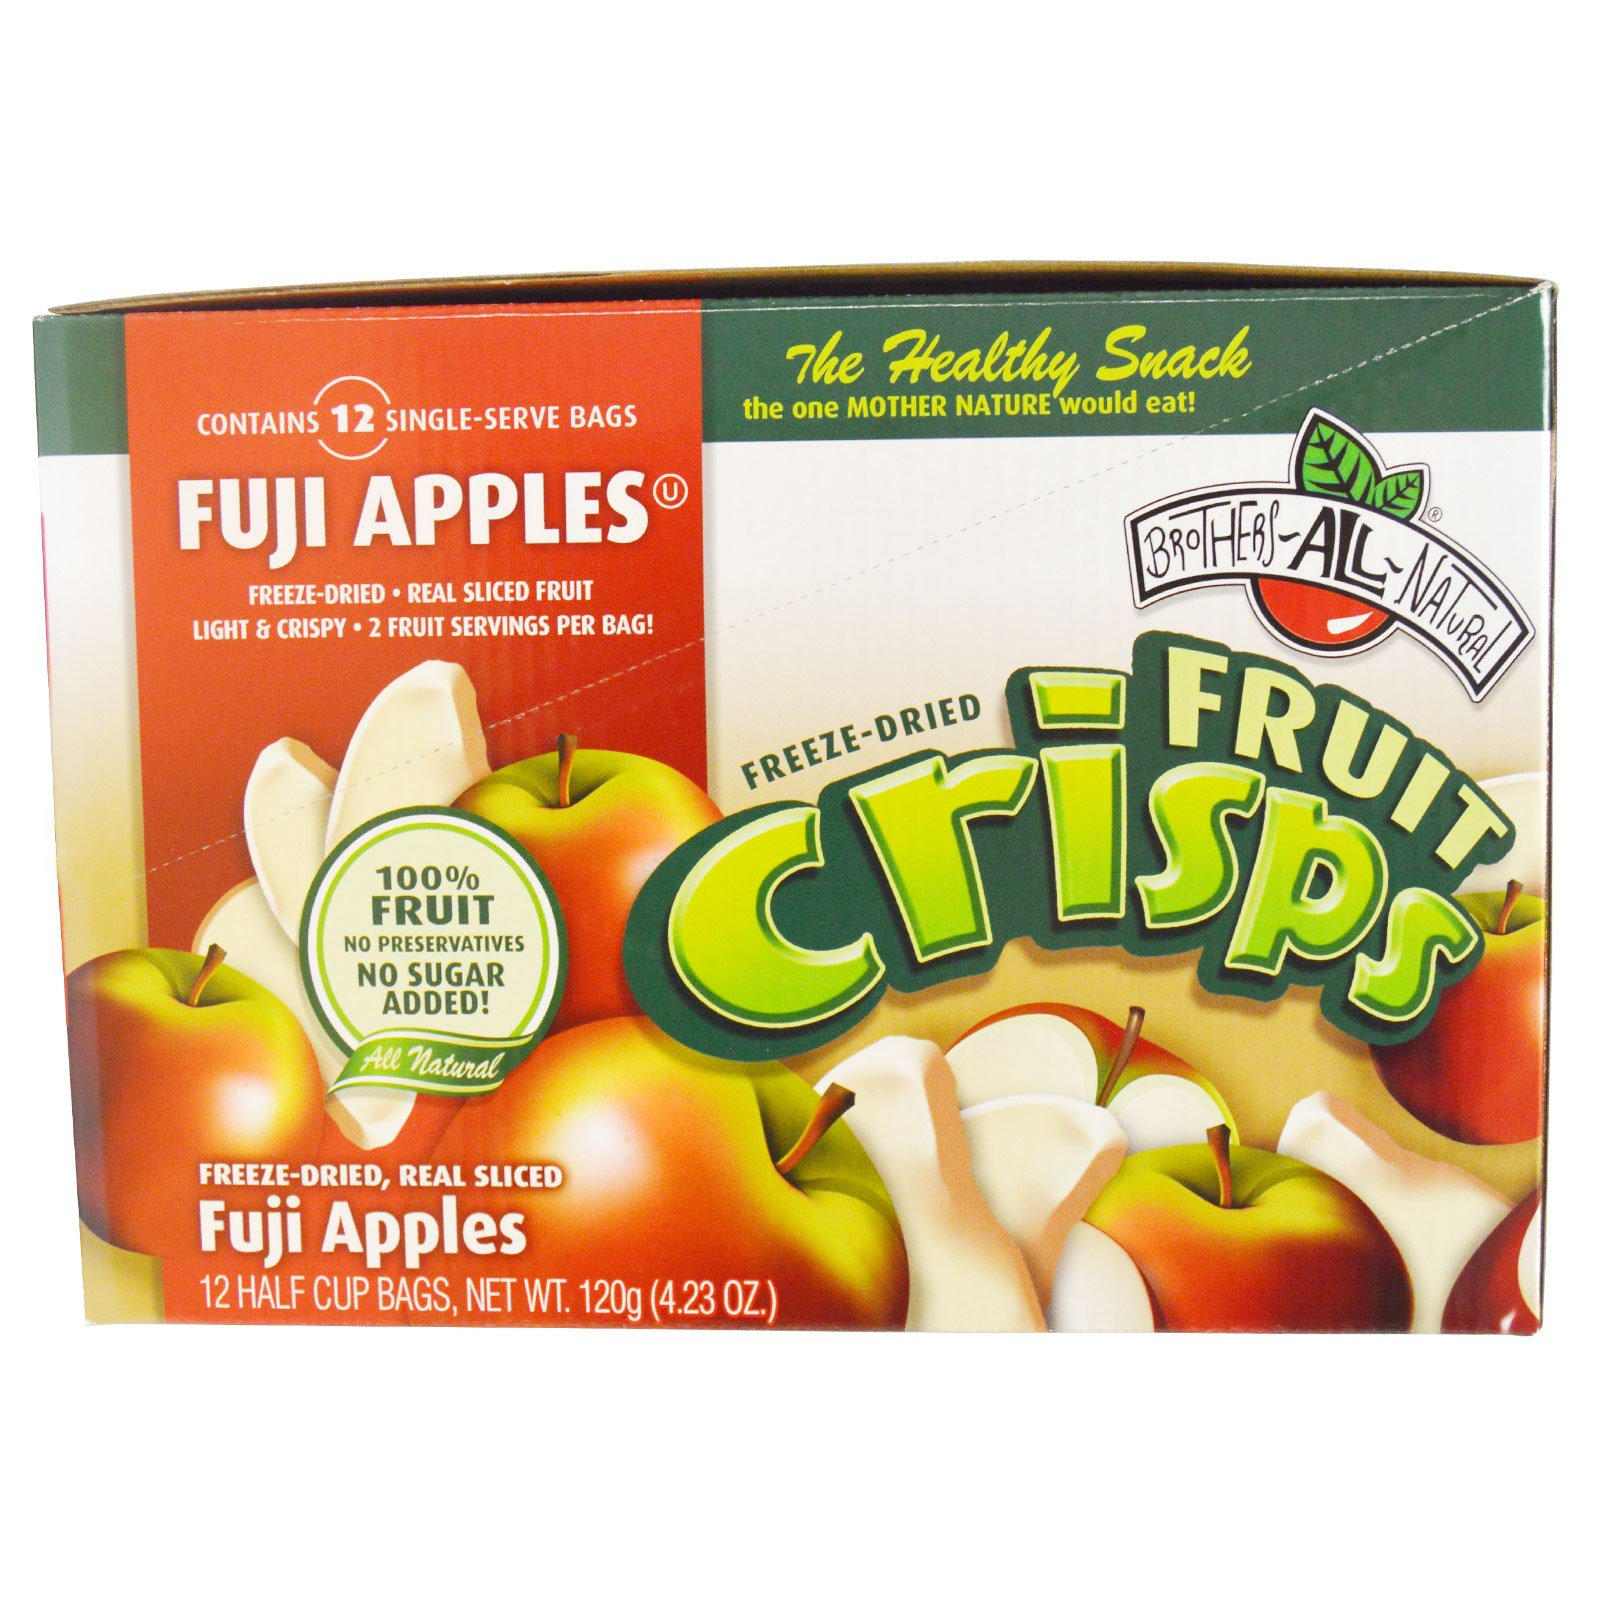 Brothers-All-Natural, Fuji Apple, 12 bags (.35 oz each)